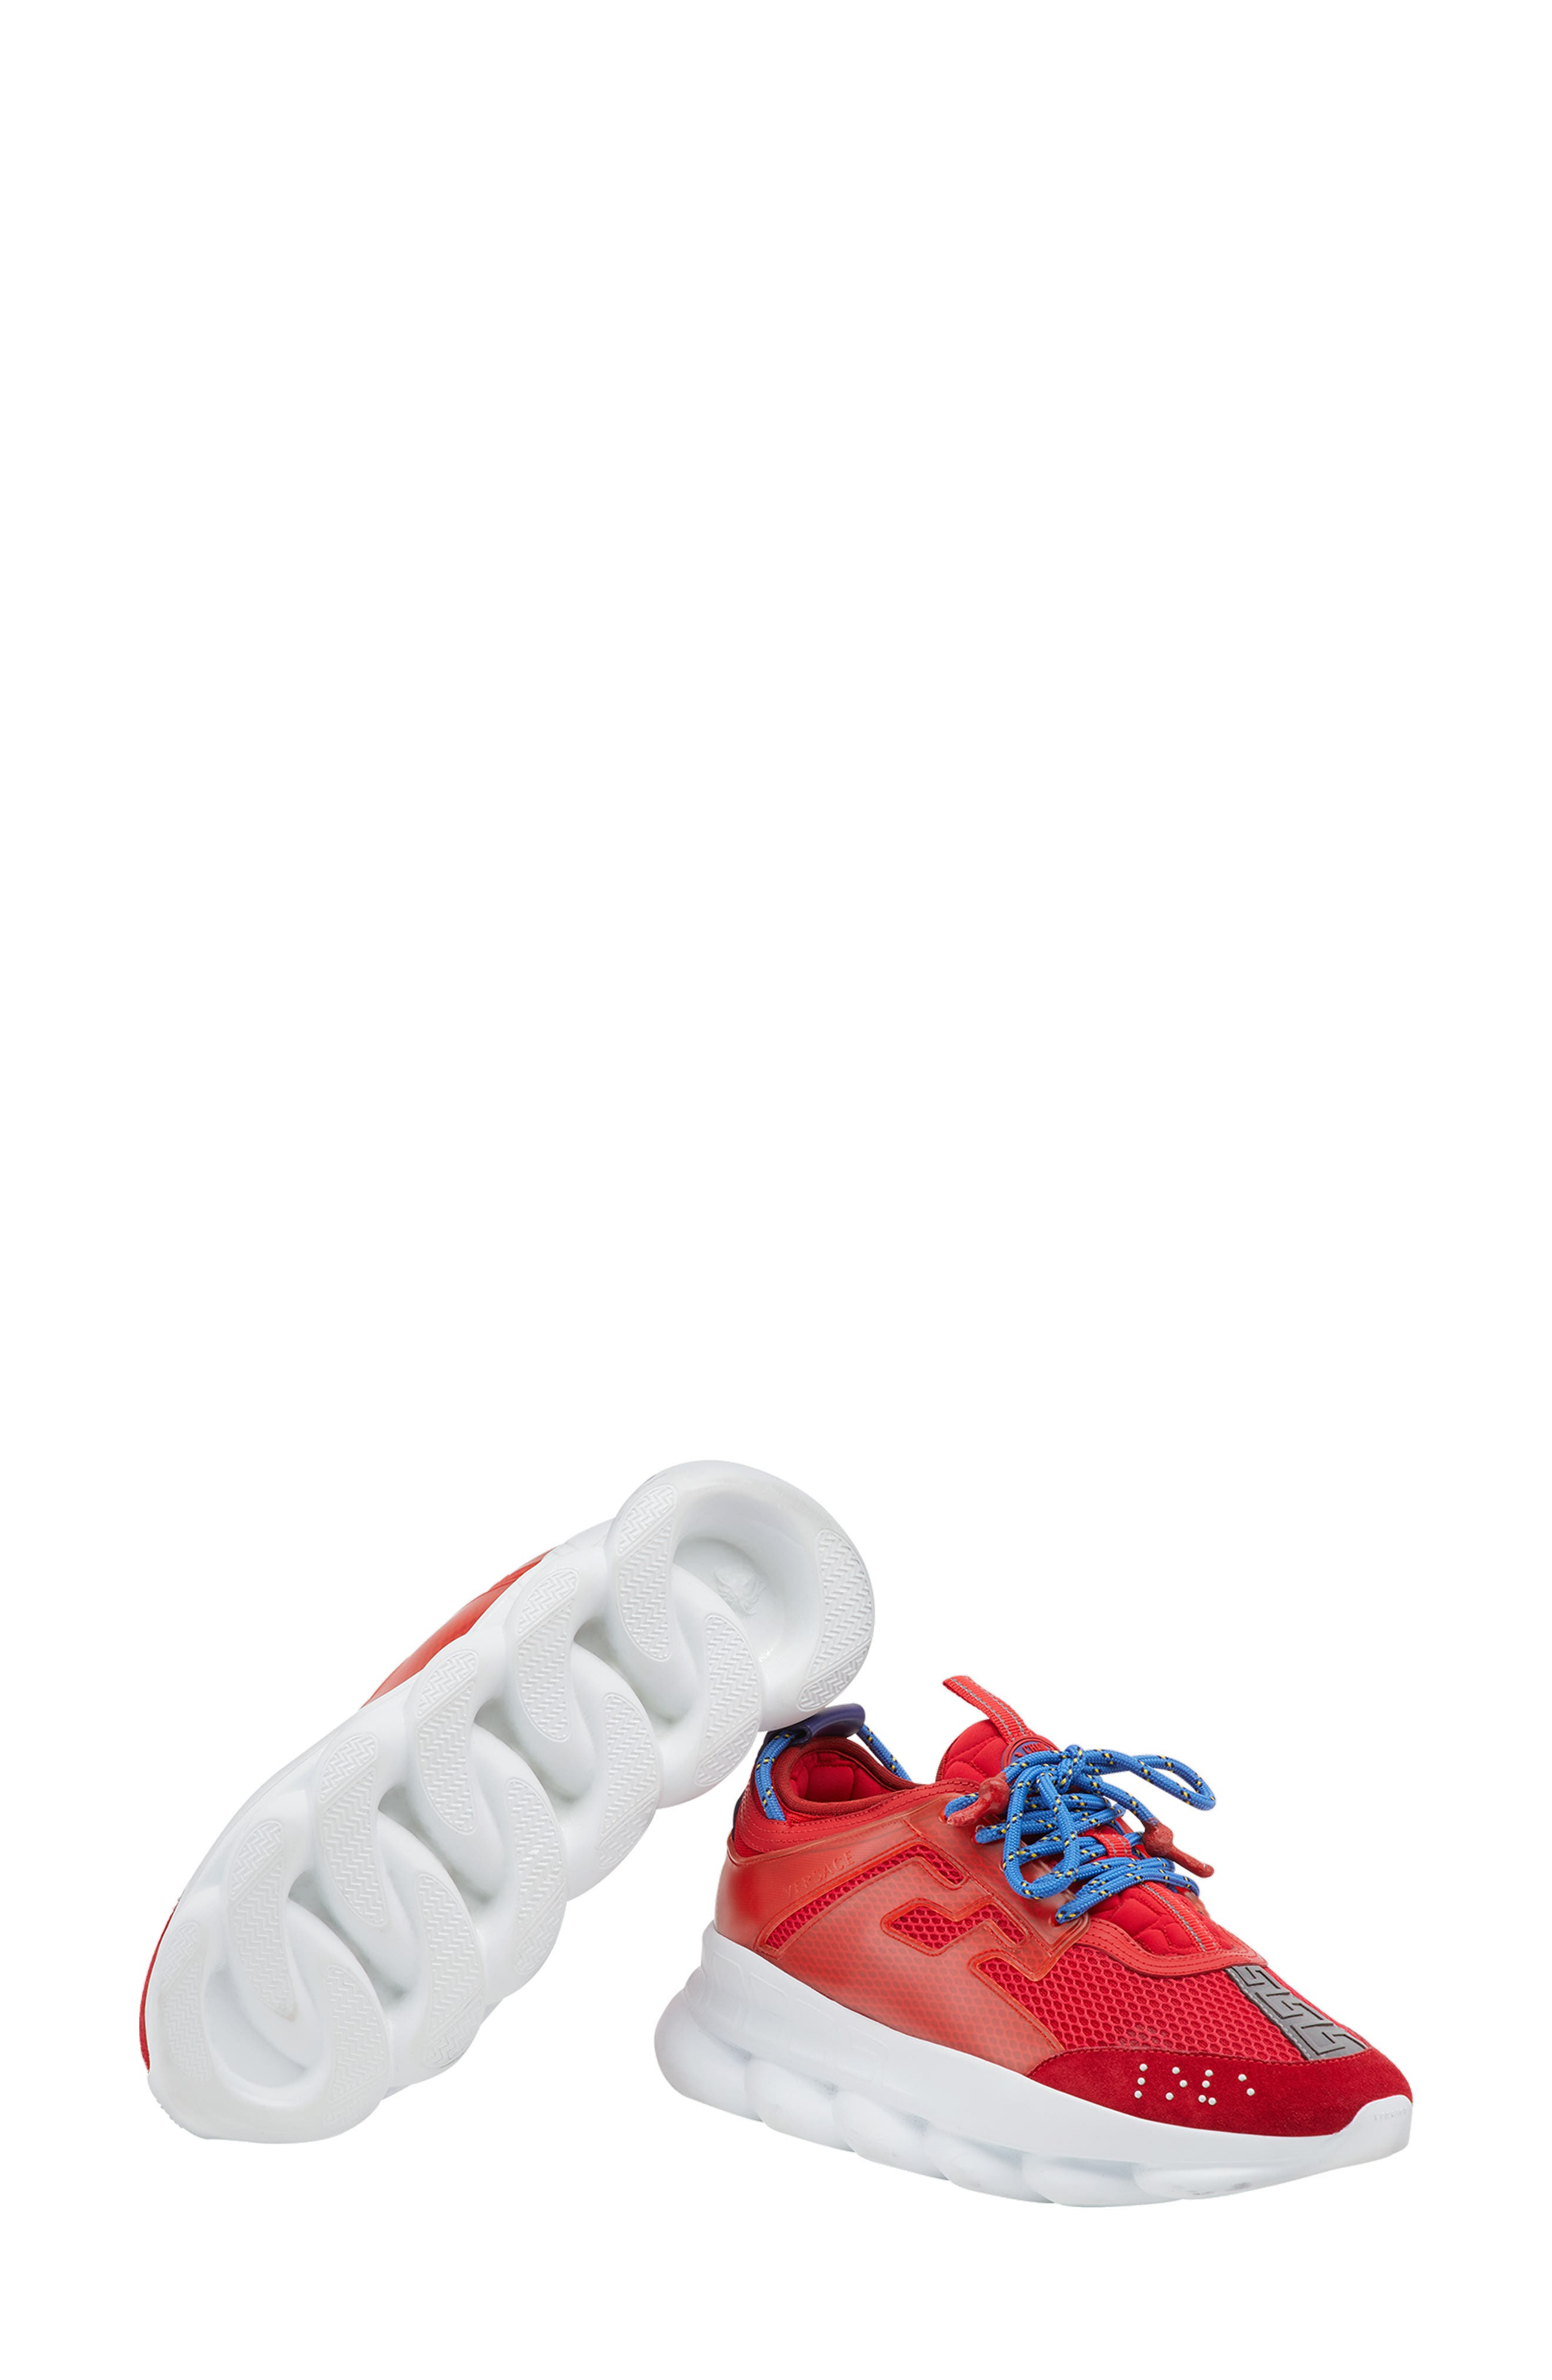 Versace Chain Reaction Sneaker,                             Alternate thumbnail 4, color,                             RED